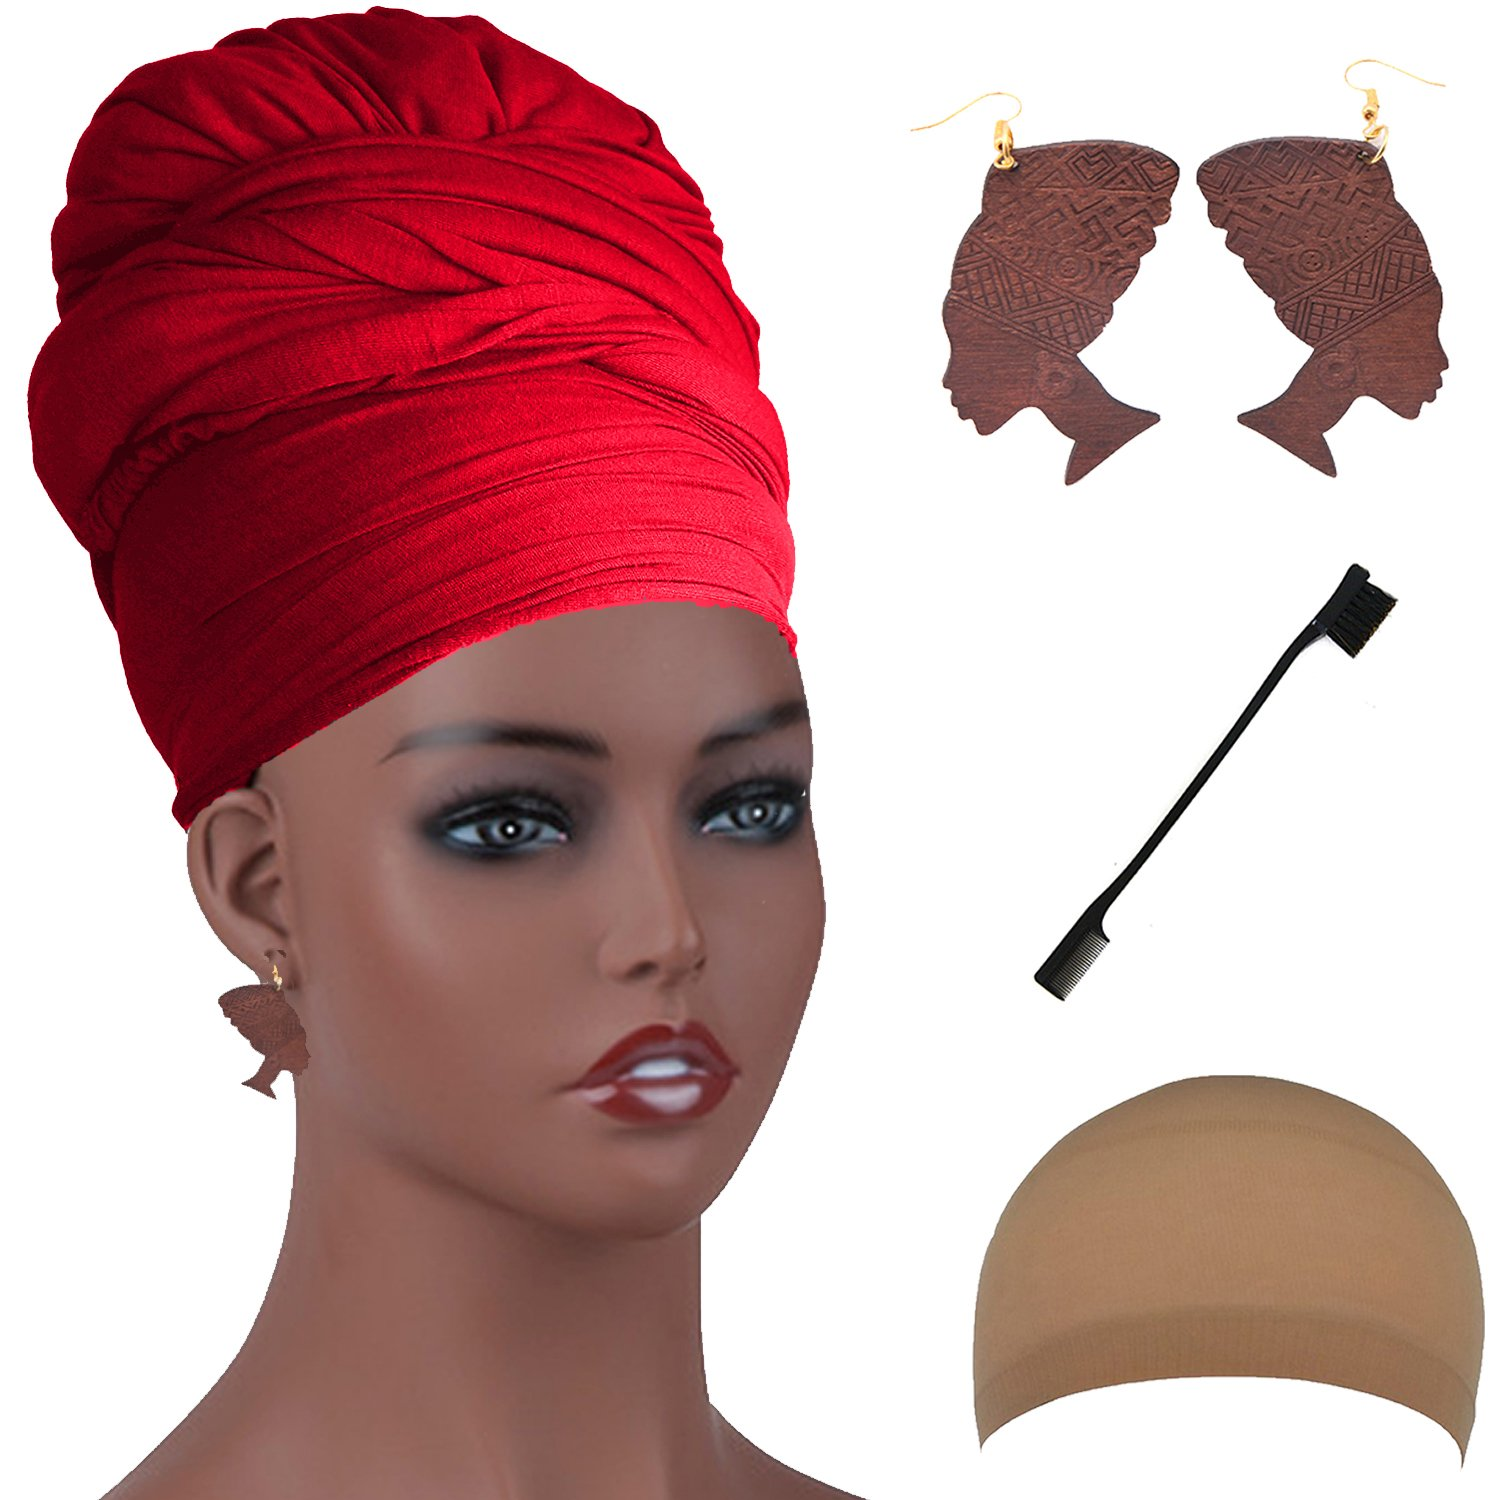 Long Stretch Head Wrap Set- Solid Color African Turban Hair Scarf Tie, Double Sided Edge Control Hair Brush Comb Combo,Wooden Colored Turban African Woman Earrings,Wig Cap (OneSize, Red)